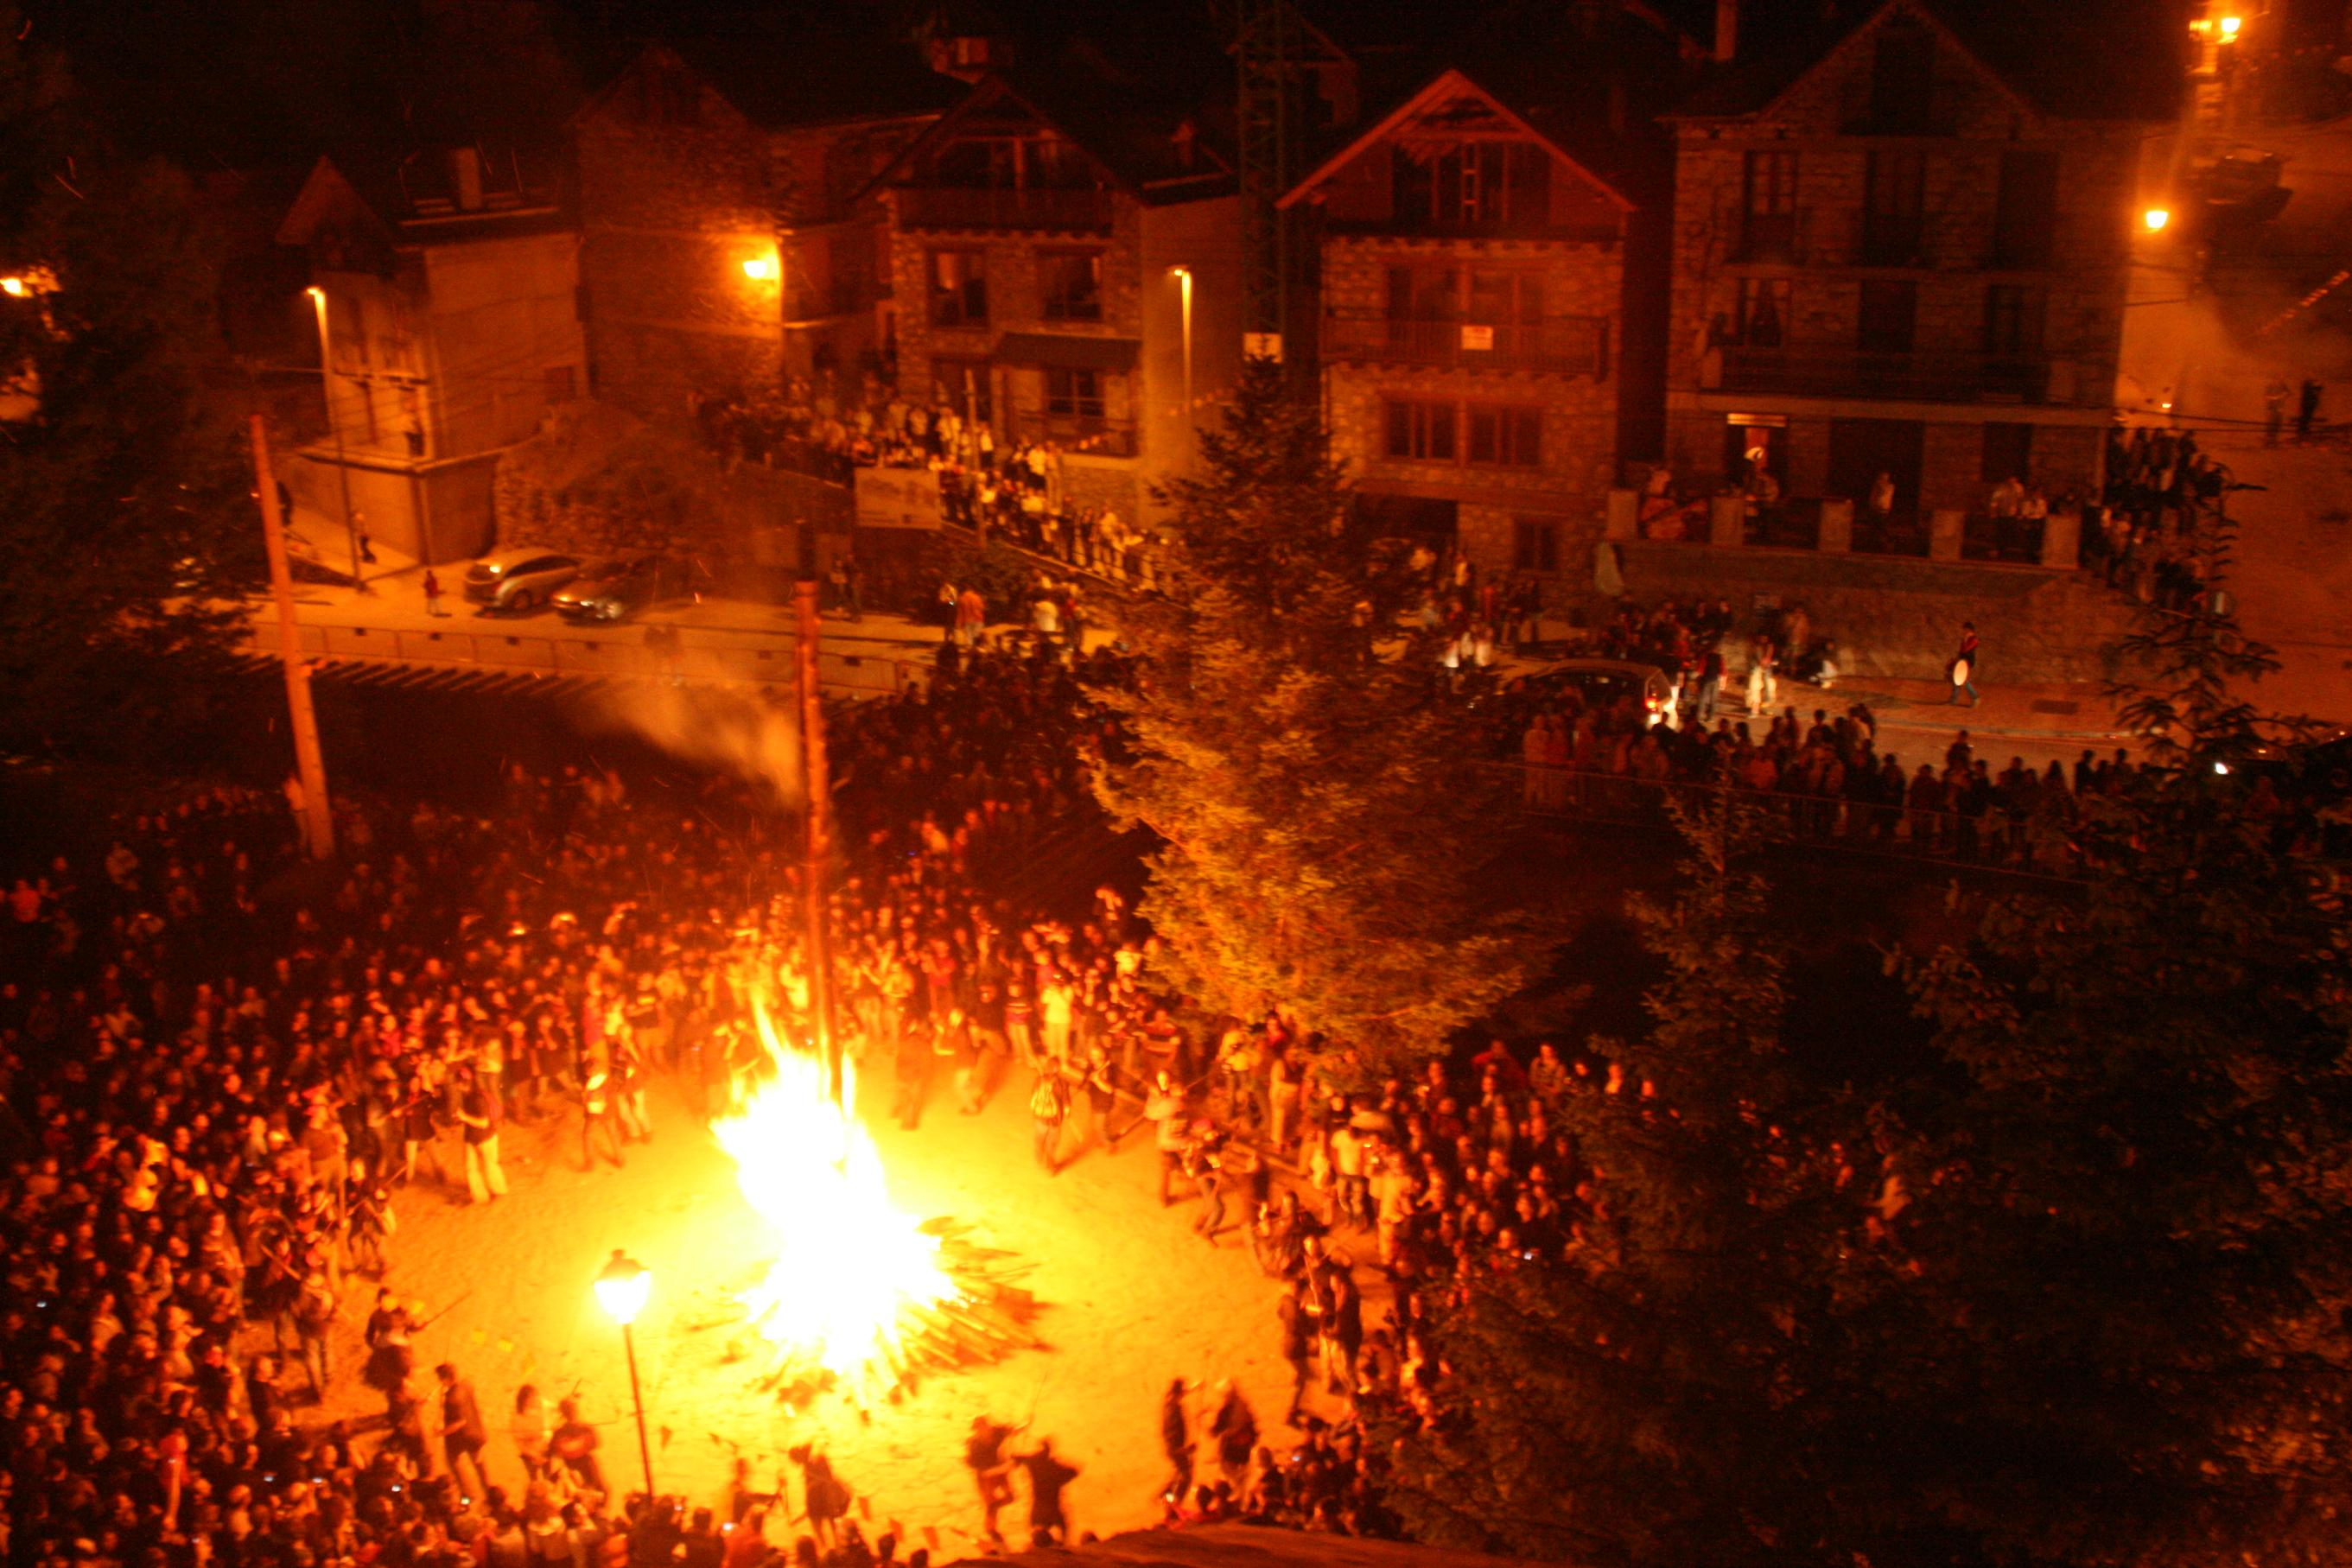 Summer Solstice Festivities on the night of San Juan 3